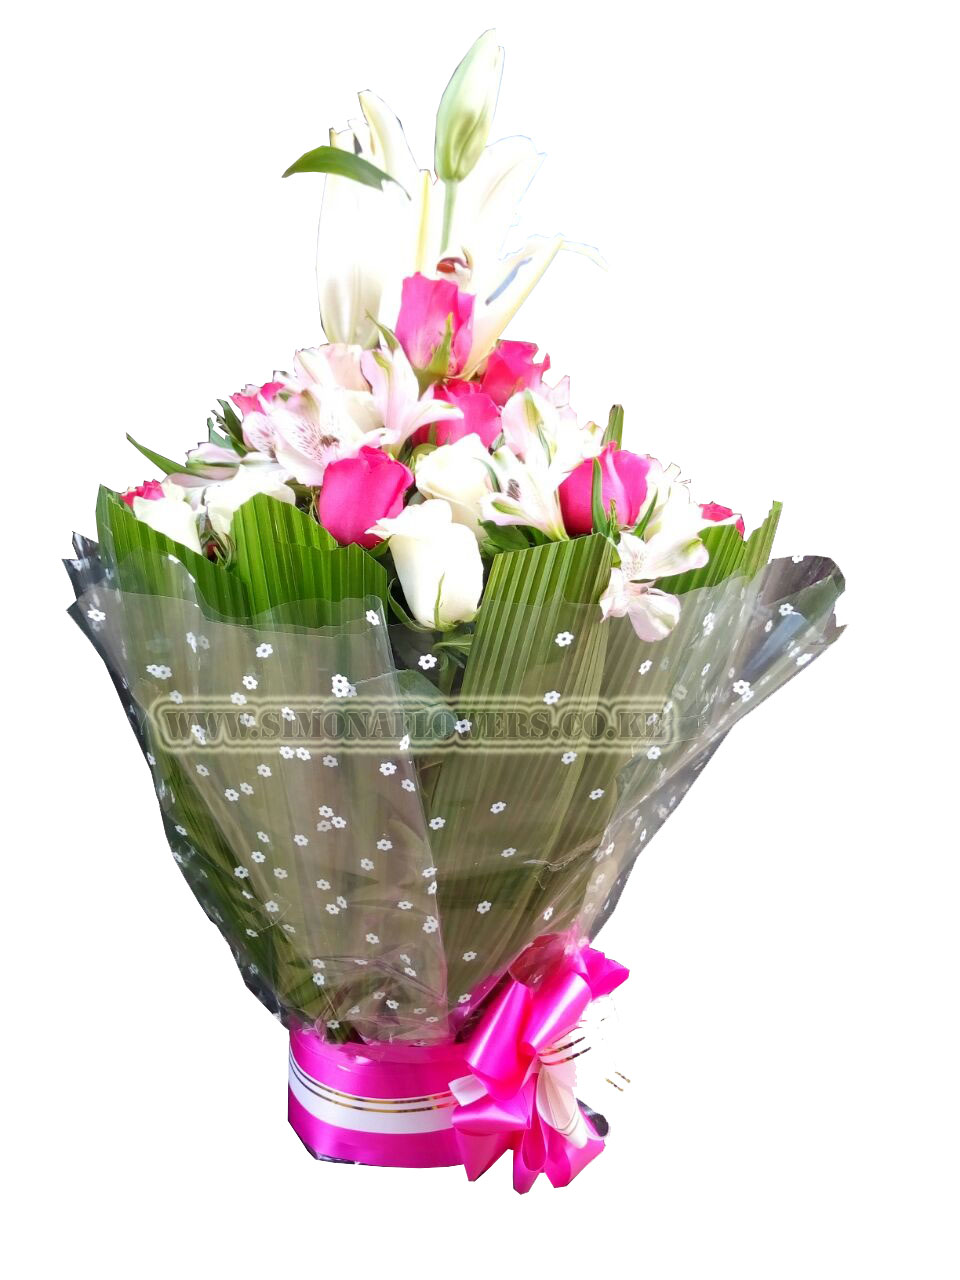 Simona flowers say happy birthday with beautiful flowers from simona flowers nairobi kenya running late try our same day flowers collection for delivery today izmirmasajfo